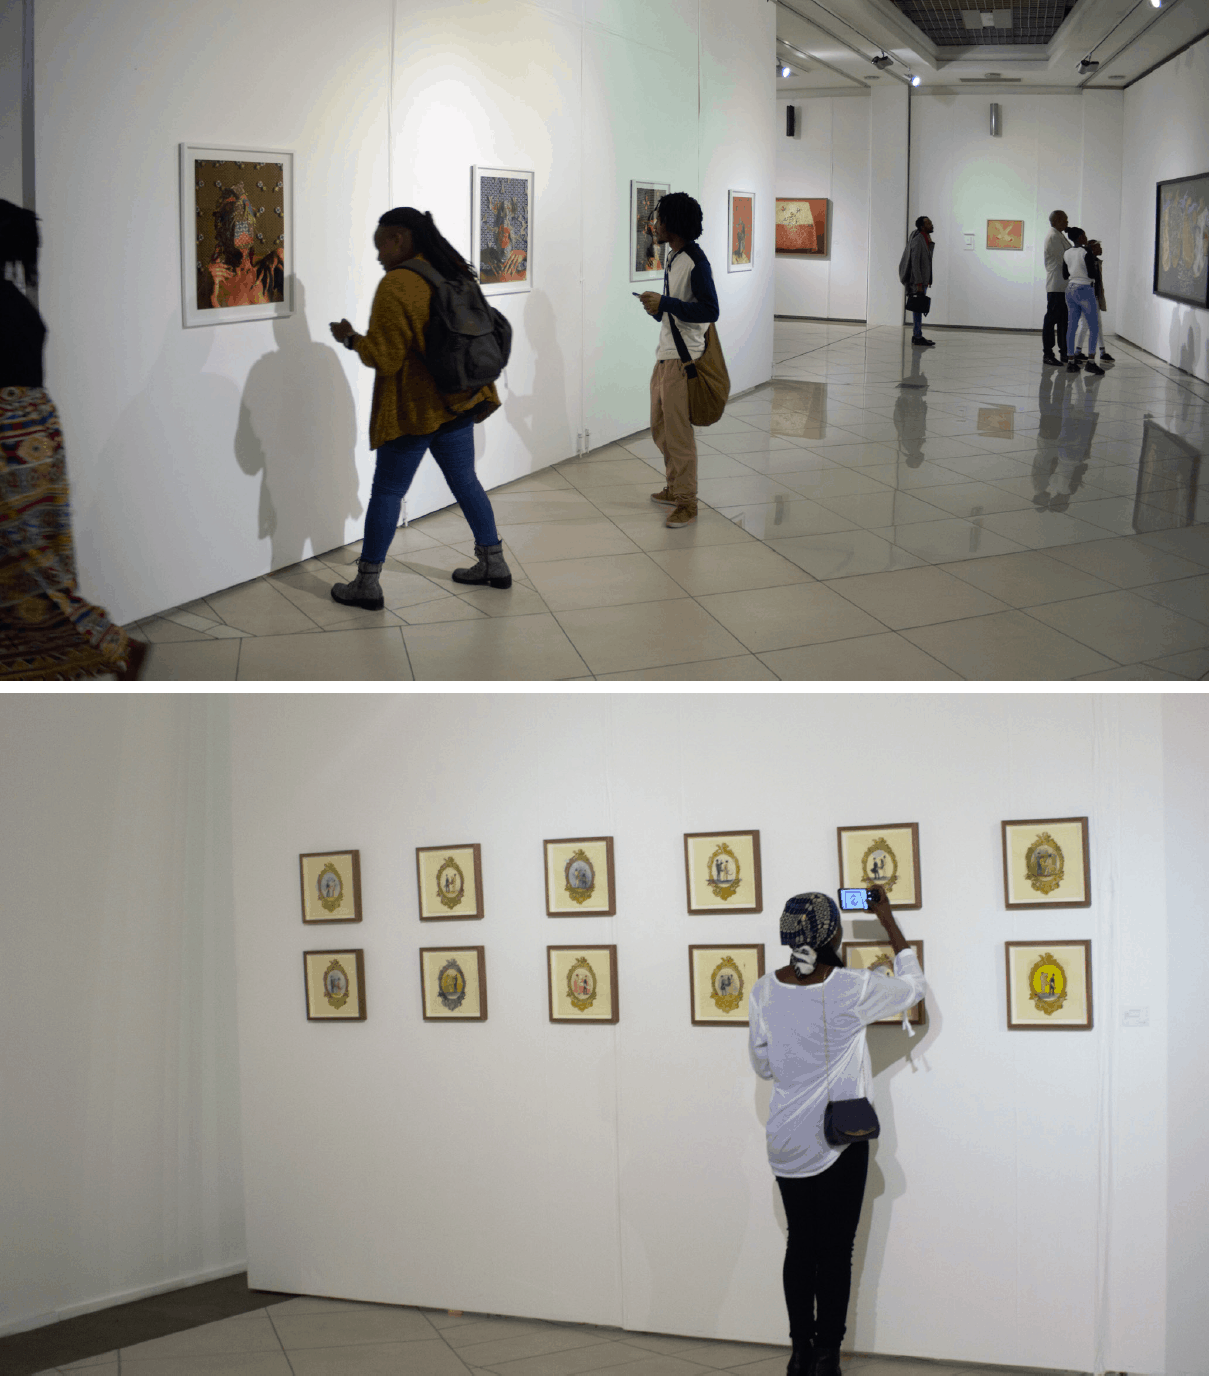 TOP TO BOTTOM: Visitors view the works at the Unisa Art Gallery. Gallery visitor viewing Ann Gollifer's work, Fairytales I - XII (2017). Set of 12-Each unique. Watercolour and monoprint on paper, 22.5 x 22.5cm (each).